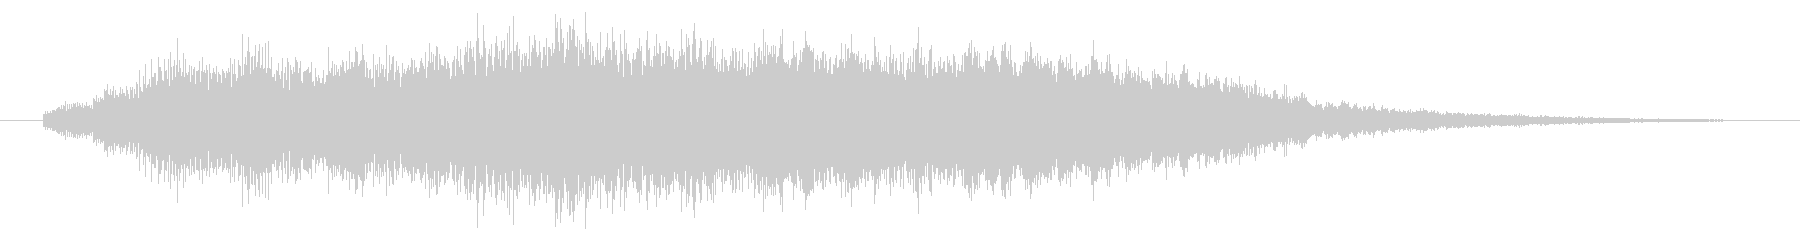 Cinematic_Opening company logo beauty's unreproduced waveform